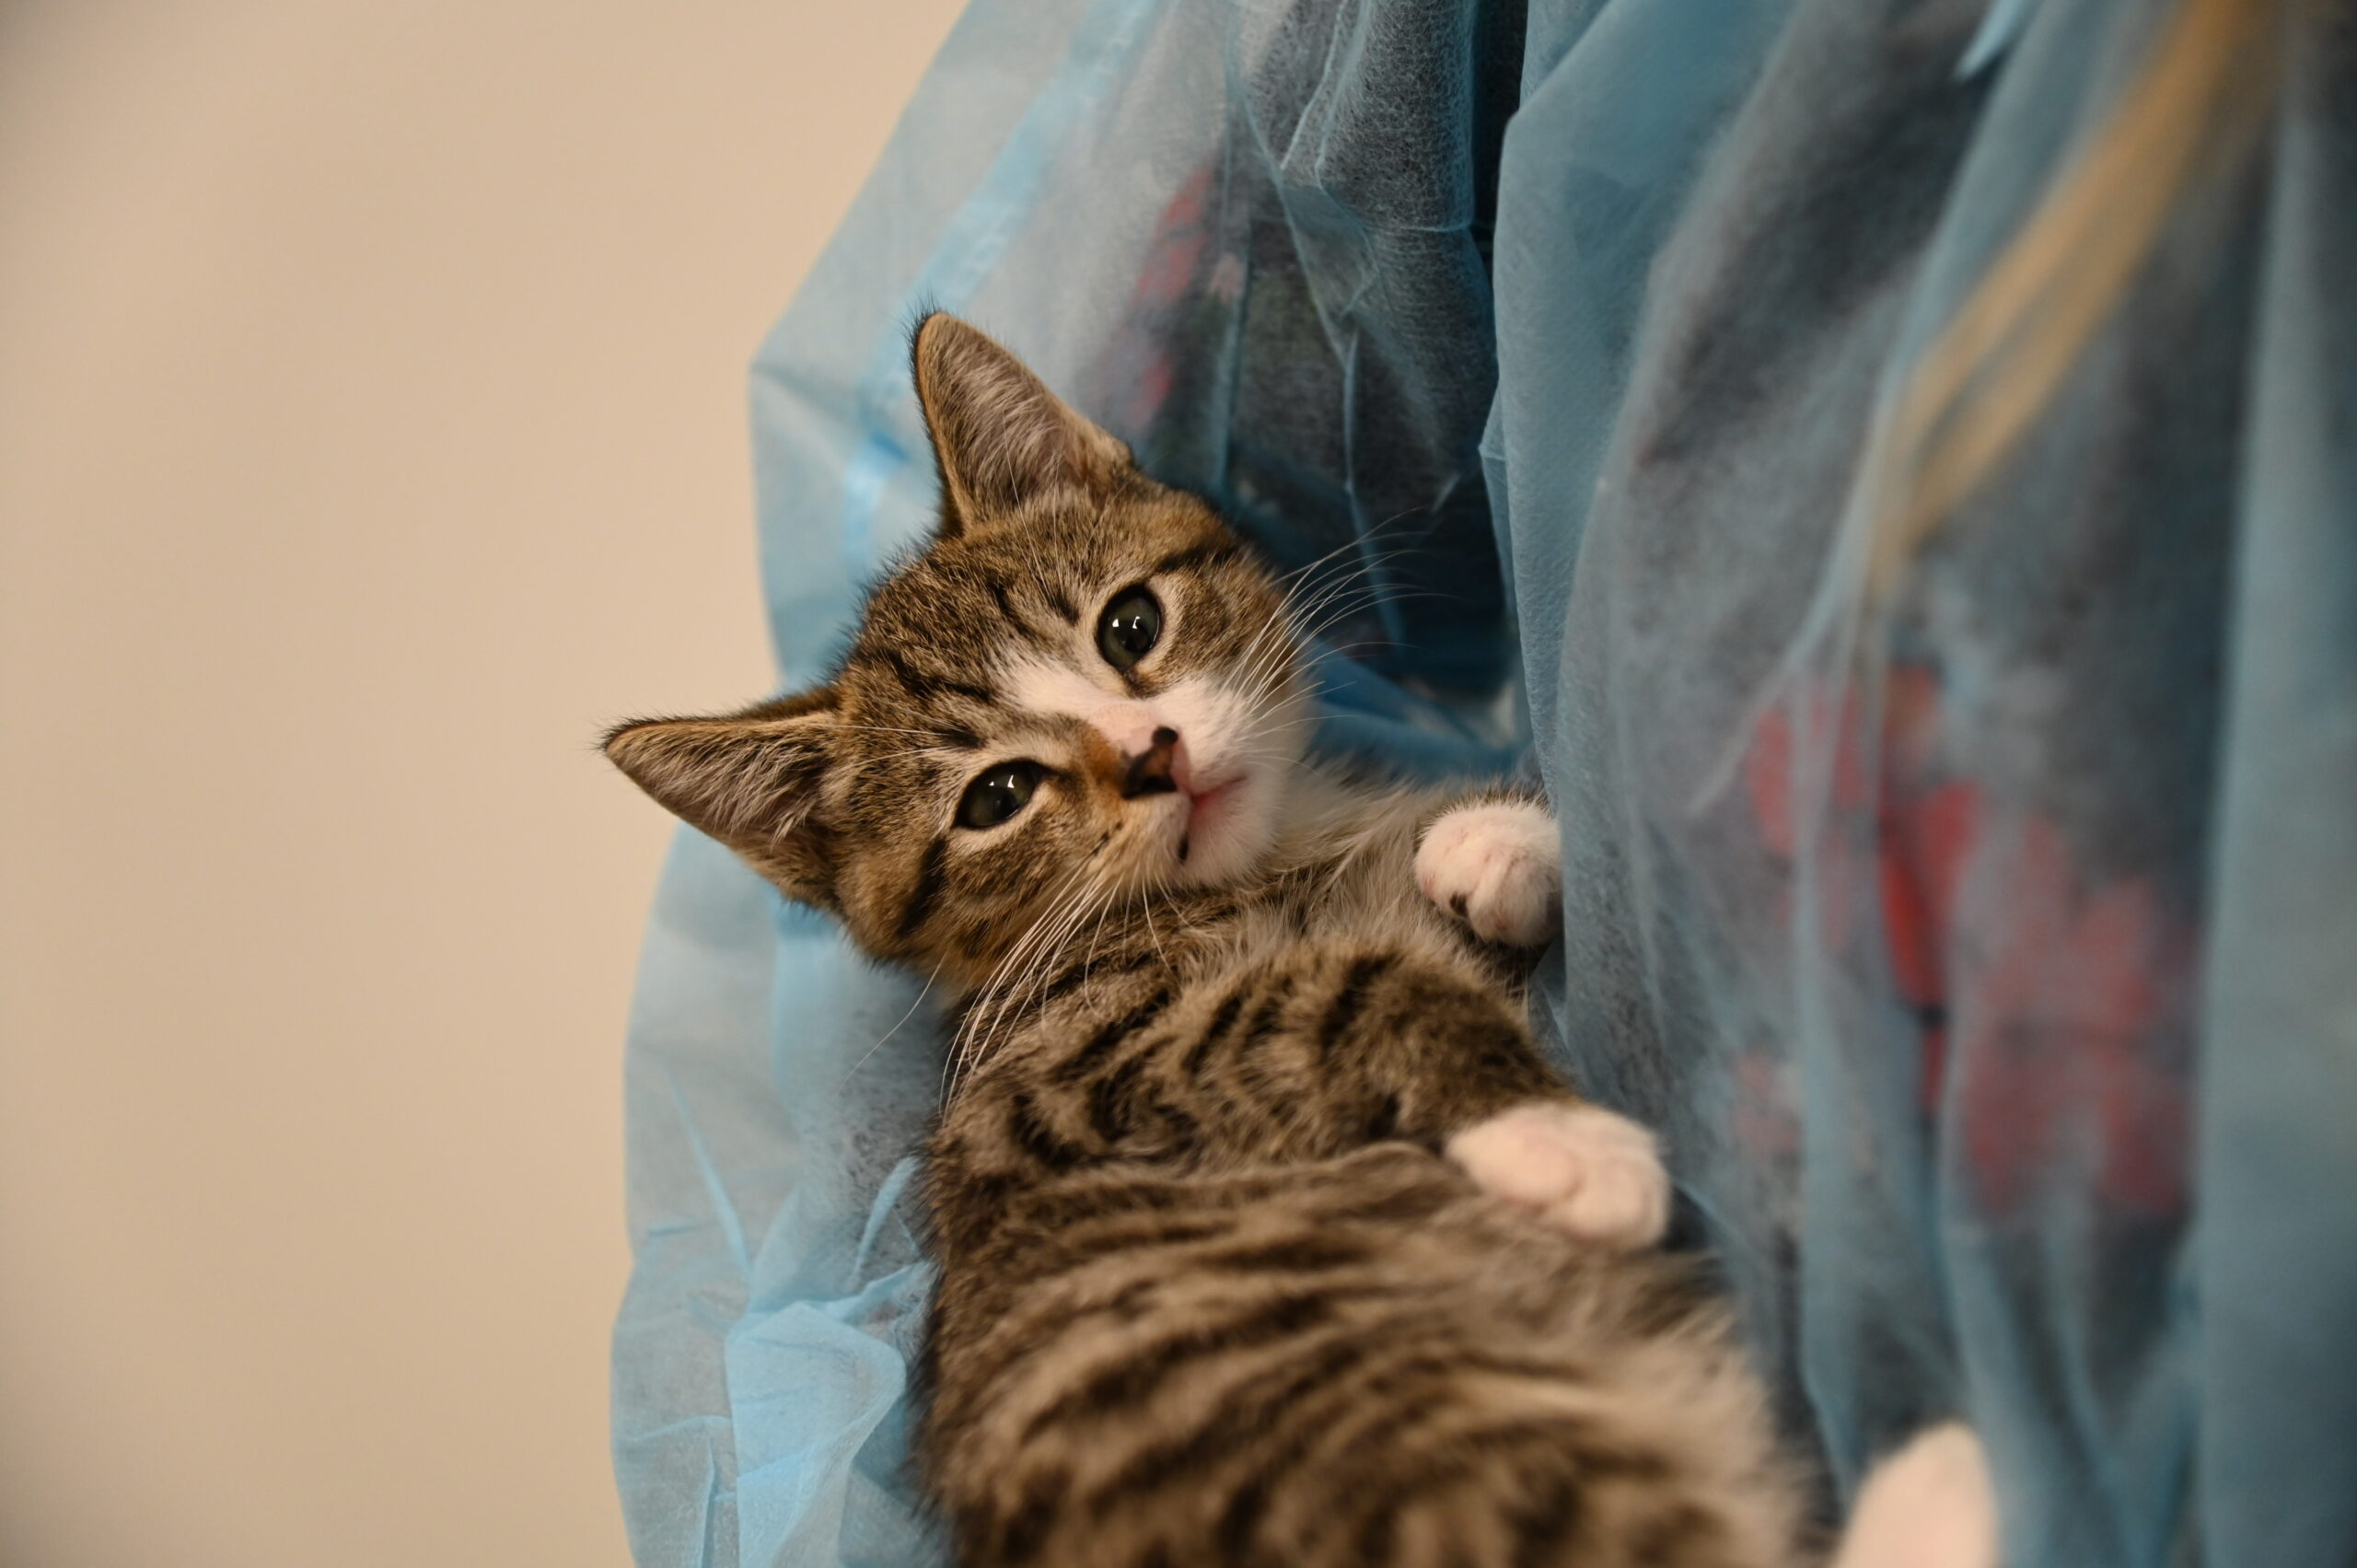 Orphan kitten gets medical check upon arrival